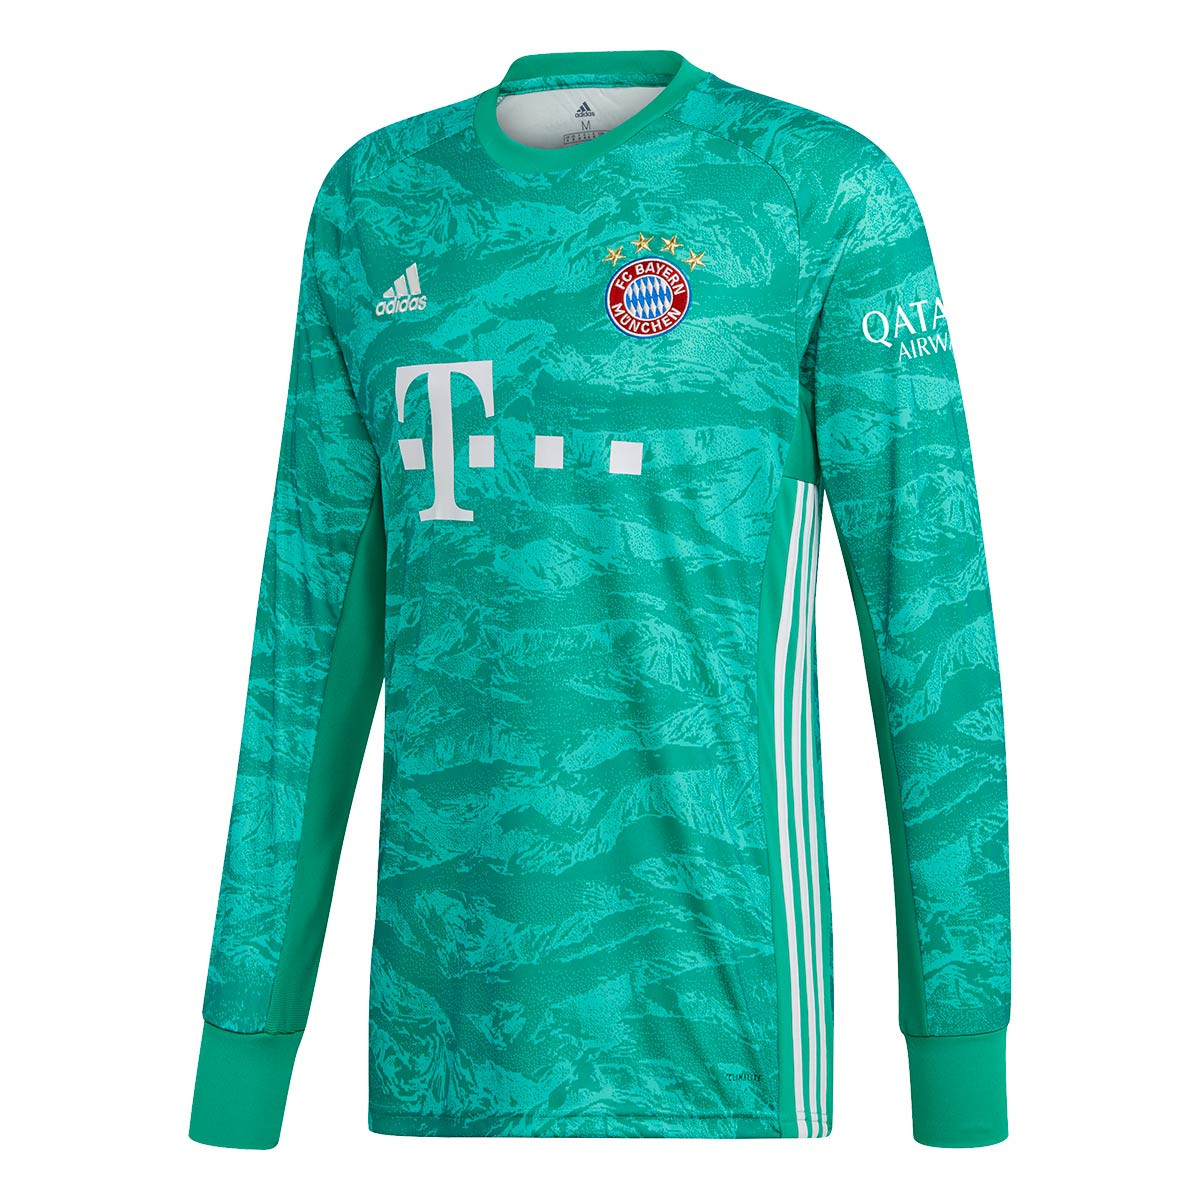 Jersey Adidas Bayern Munich Goalkeeper 2019 2020 Home Core Green Football Store Futbol Emotion